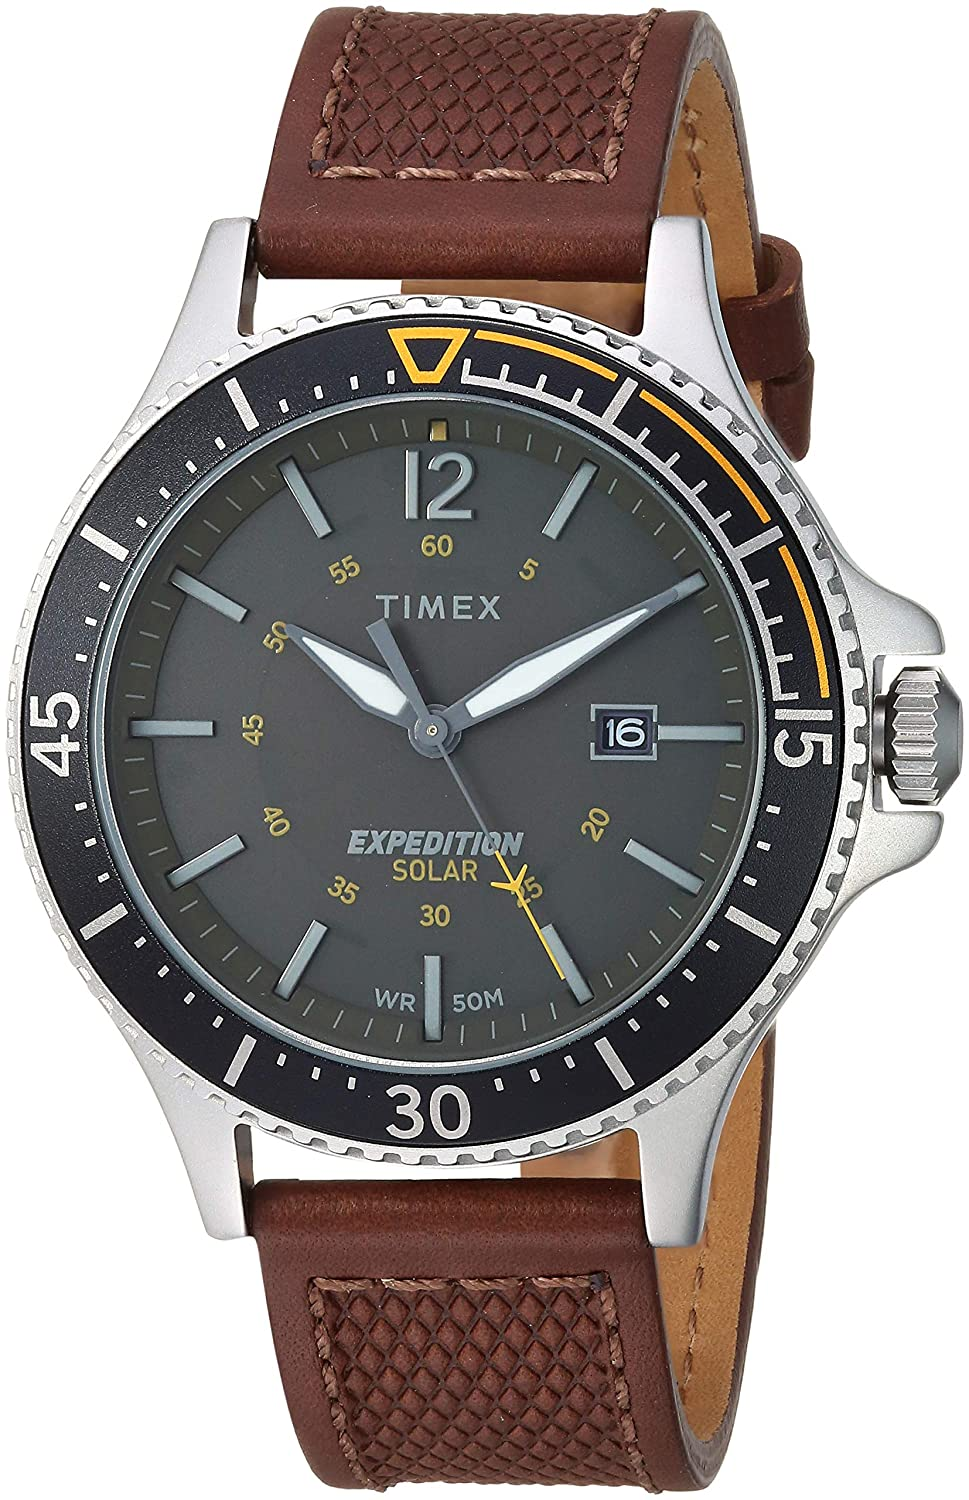 CDM product Timex Men's 'Expedition' Quartz Brass and Leather Casual Watch, Color:Brown (Model: TW4B15100JT) big image